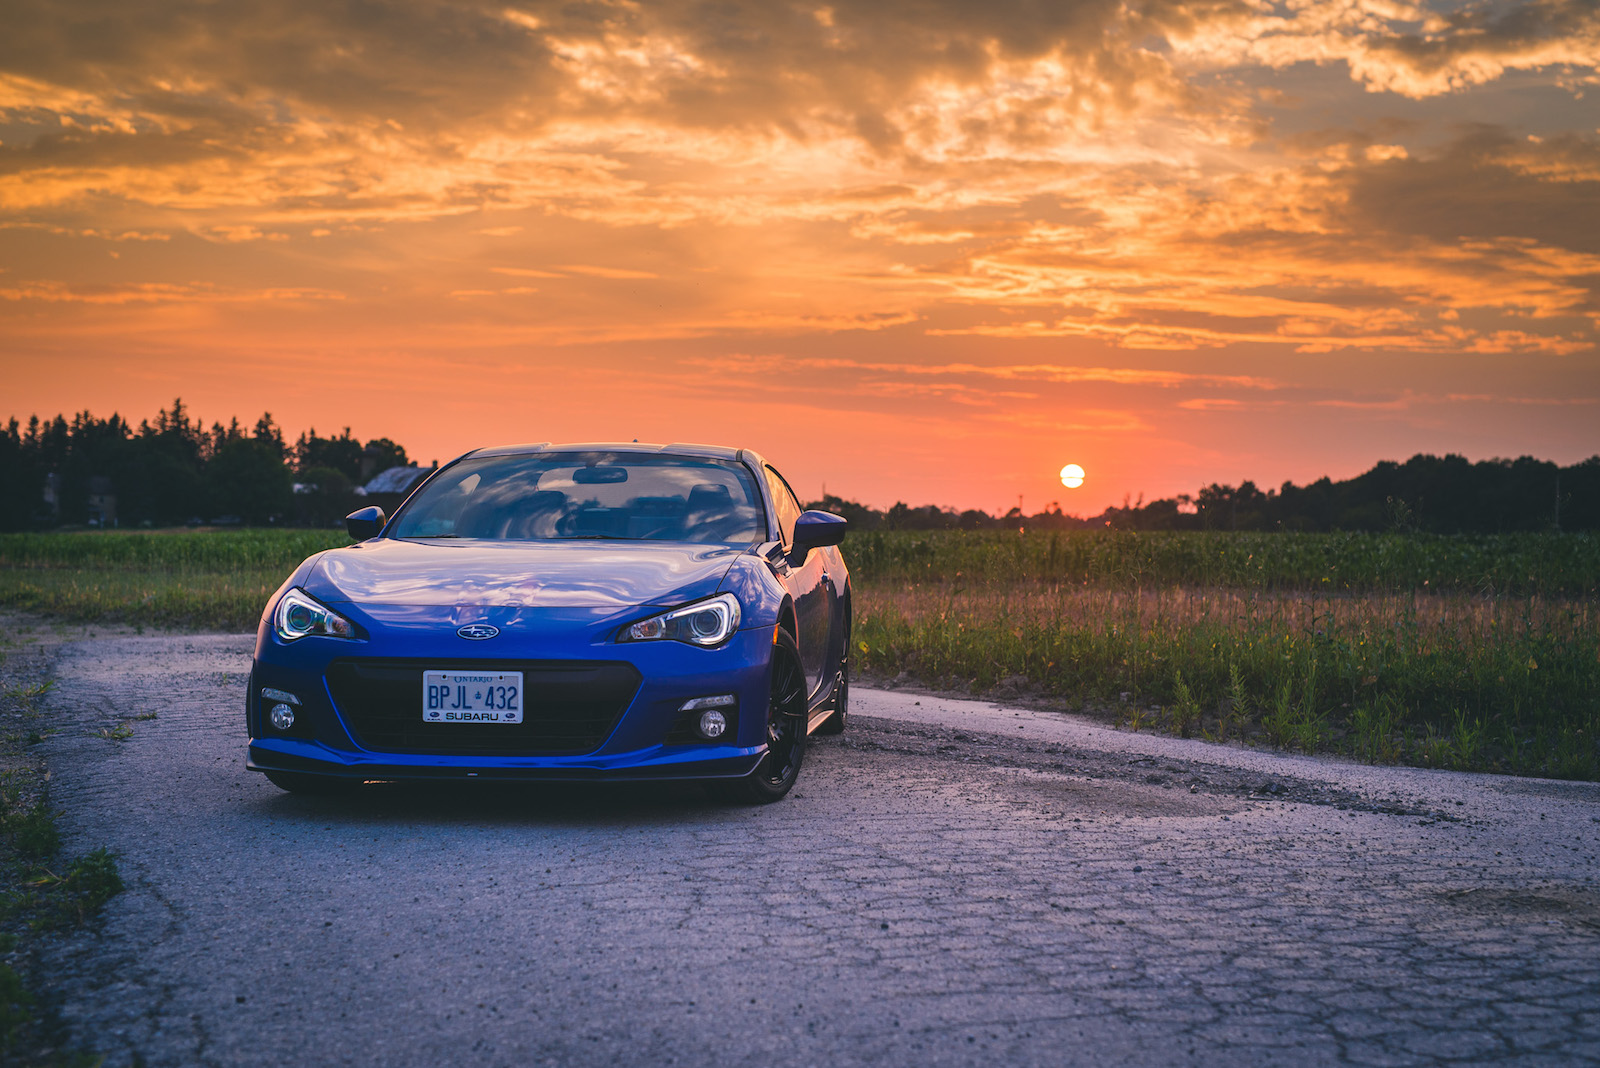 hight resolution of  2016 subaru brz blue